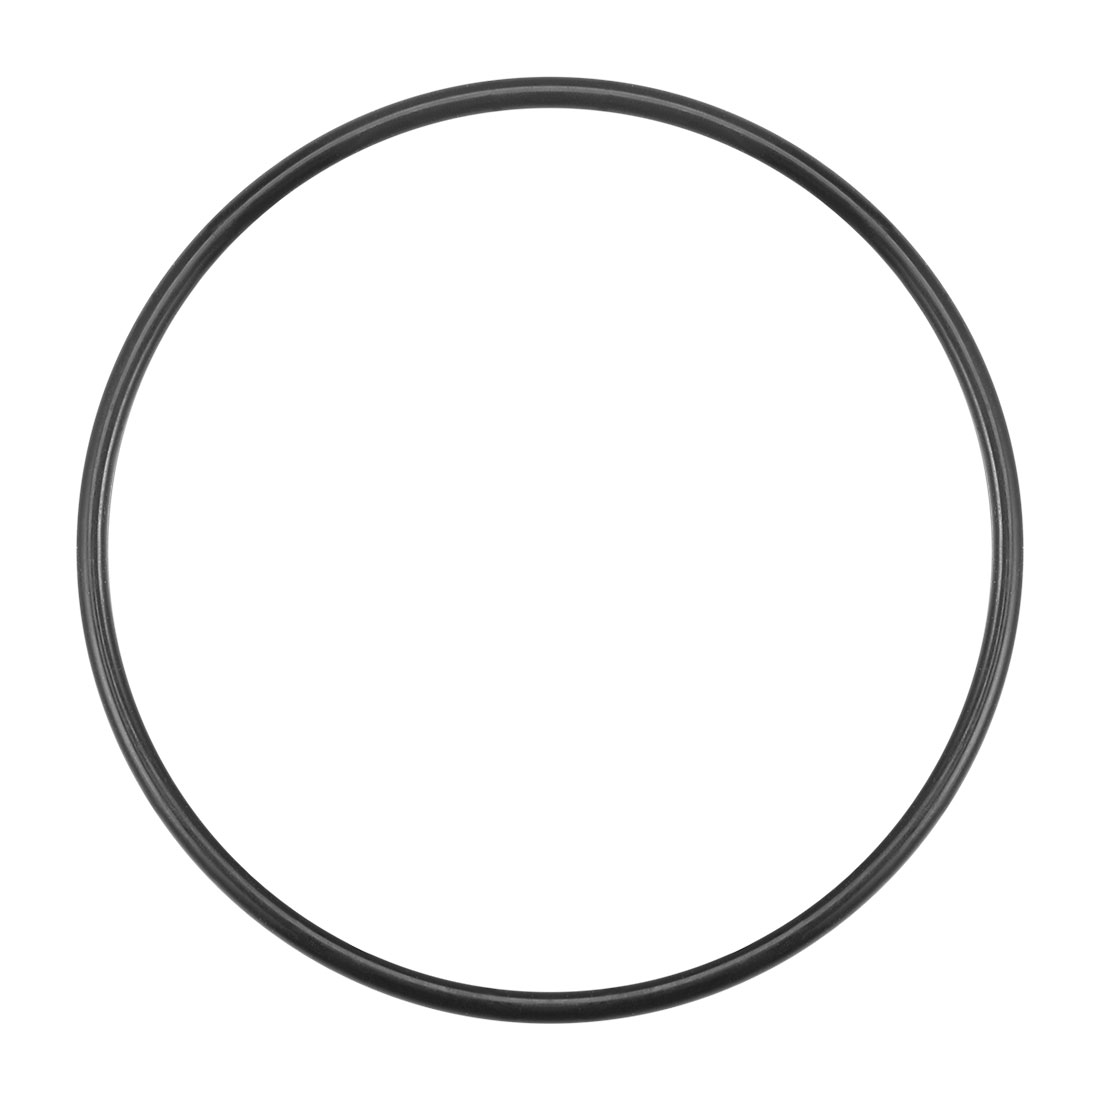 O-Rings Nitrile Rubber 50mm x 53.6mm x 1.8mm Round Seal Gasket